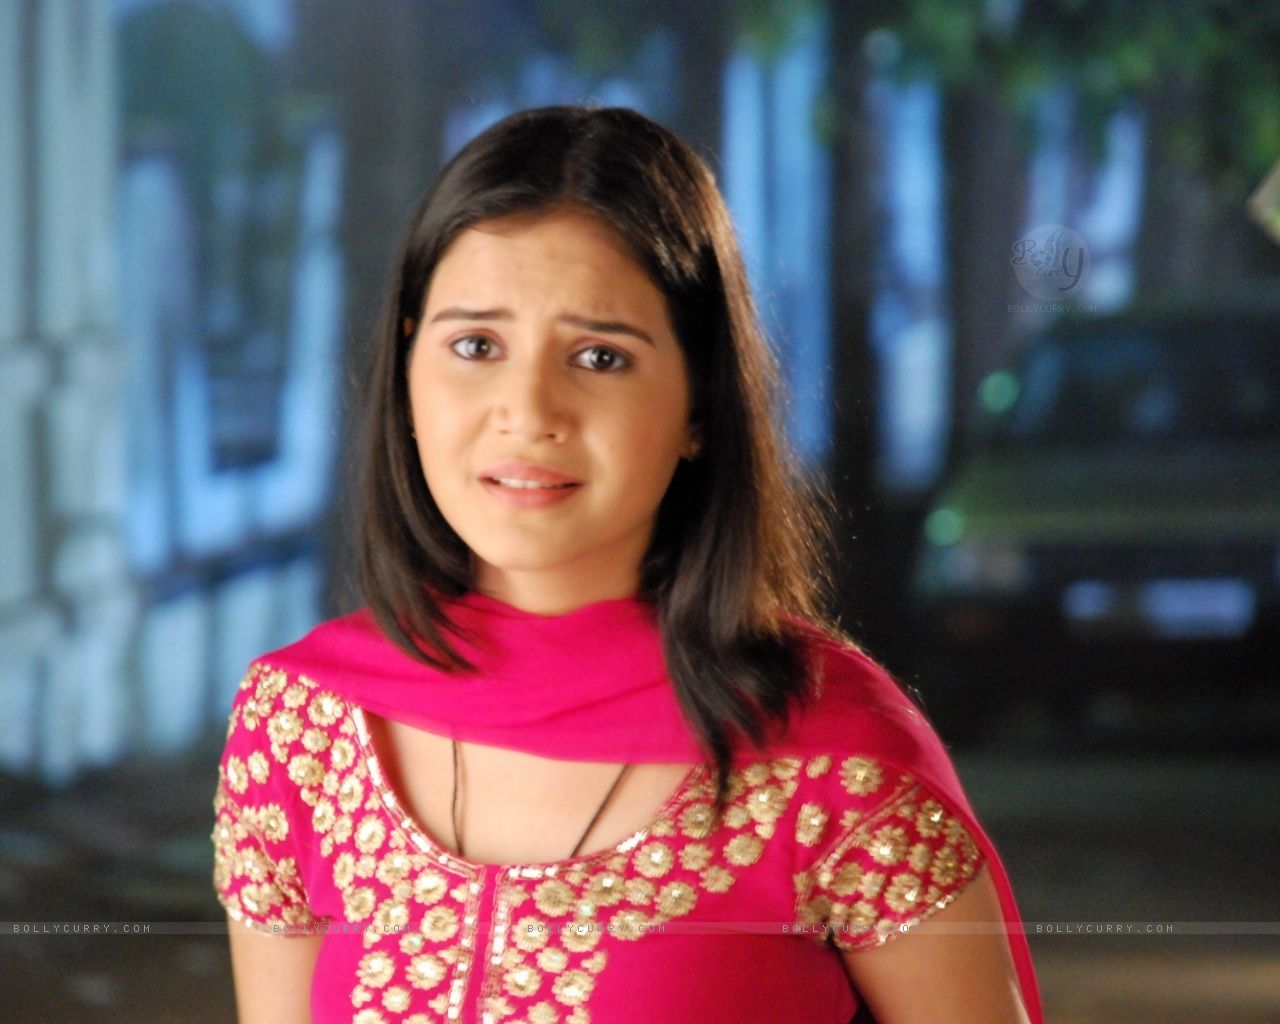 Star Plus Actress Photos  Pictures  Images  Wallpapers  Shivshakti